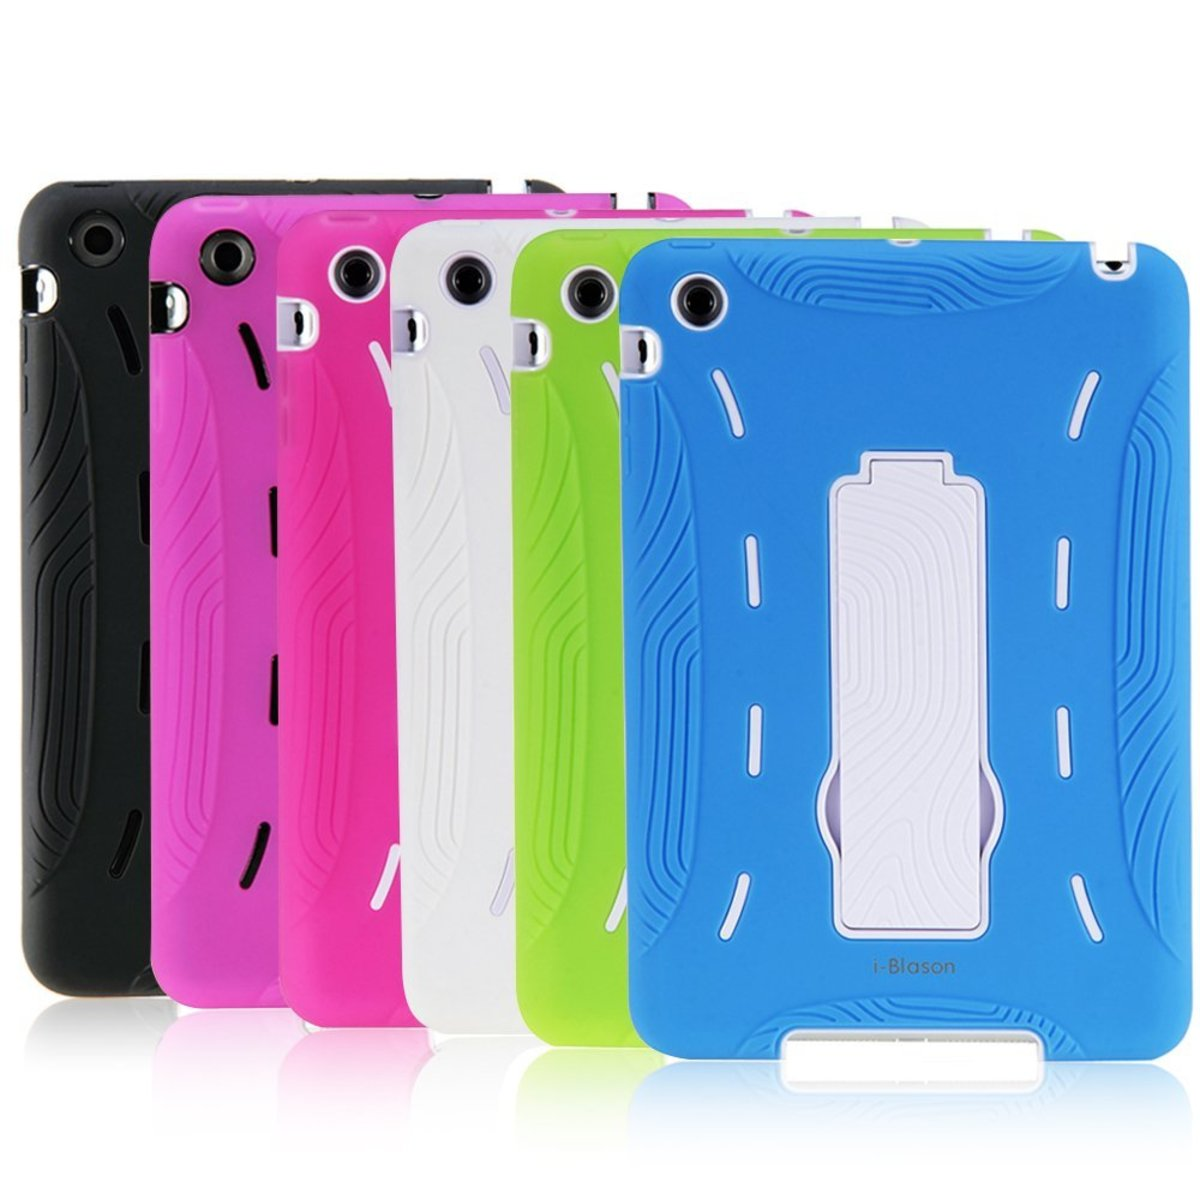 The 5 Best iPad Mini Cases and Covers for KidsCool Ipad Mini Cases For Kids